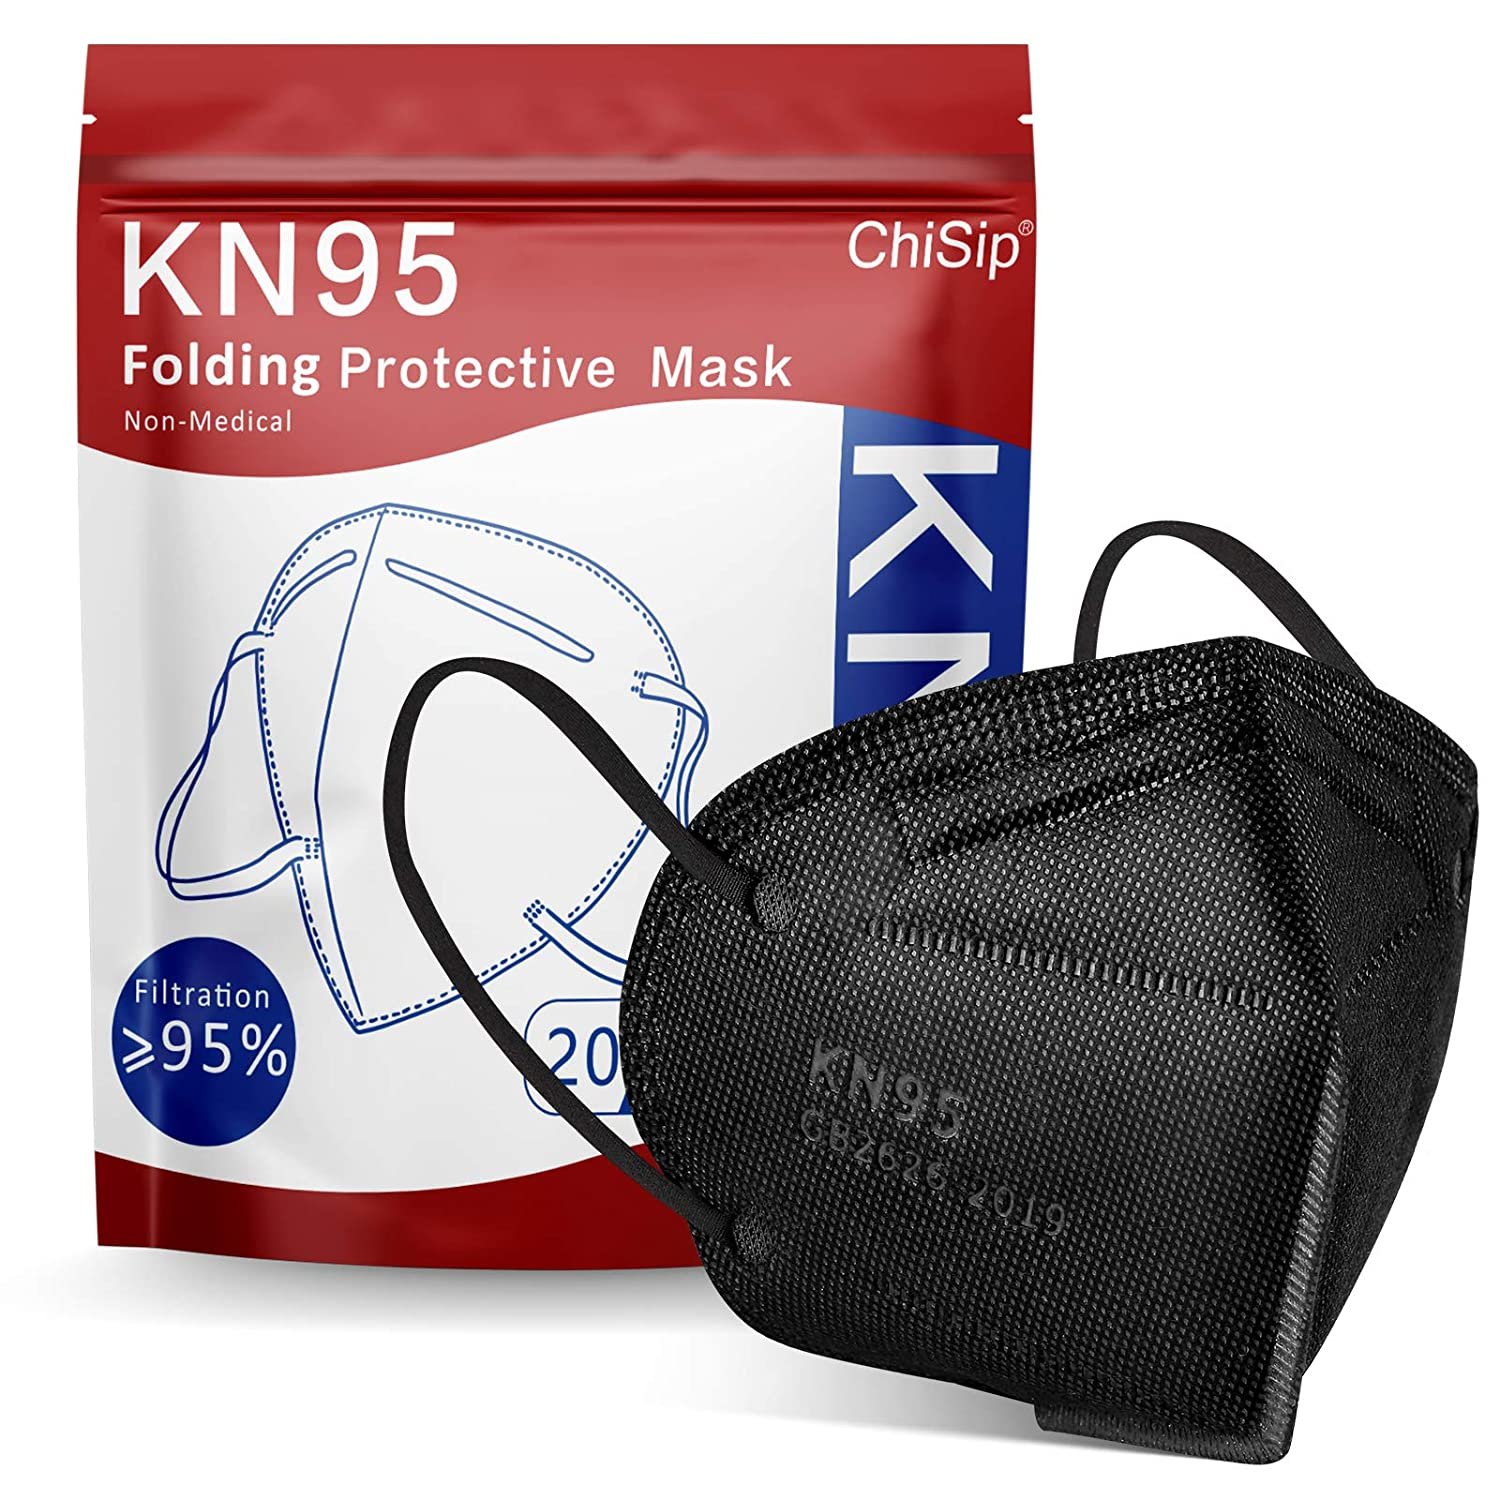 The Best KN95 Mask